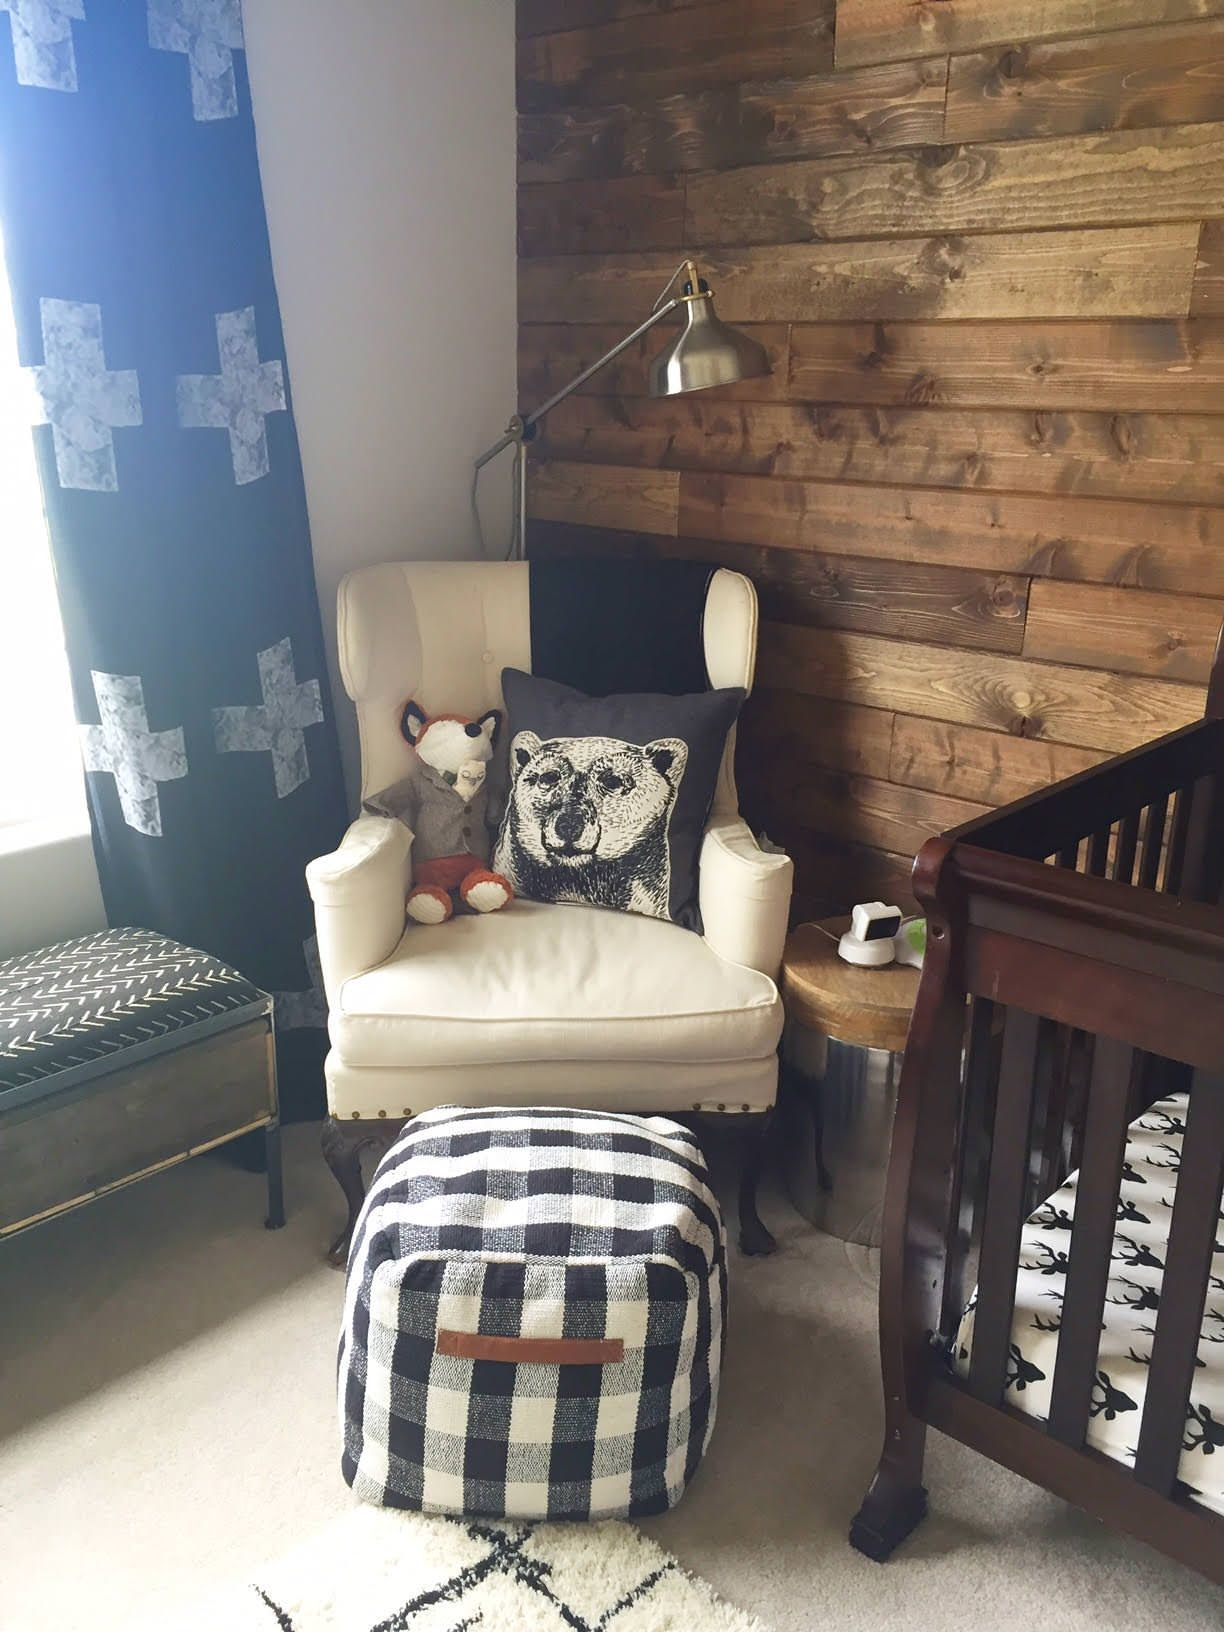 Baby Boy Room Mural Ideas: Woodland Nursery Boy, Rustic